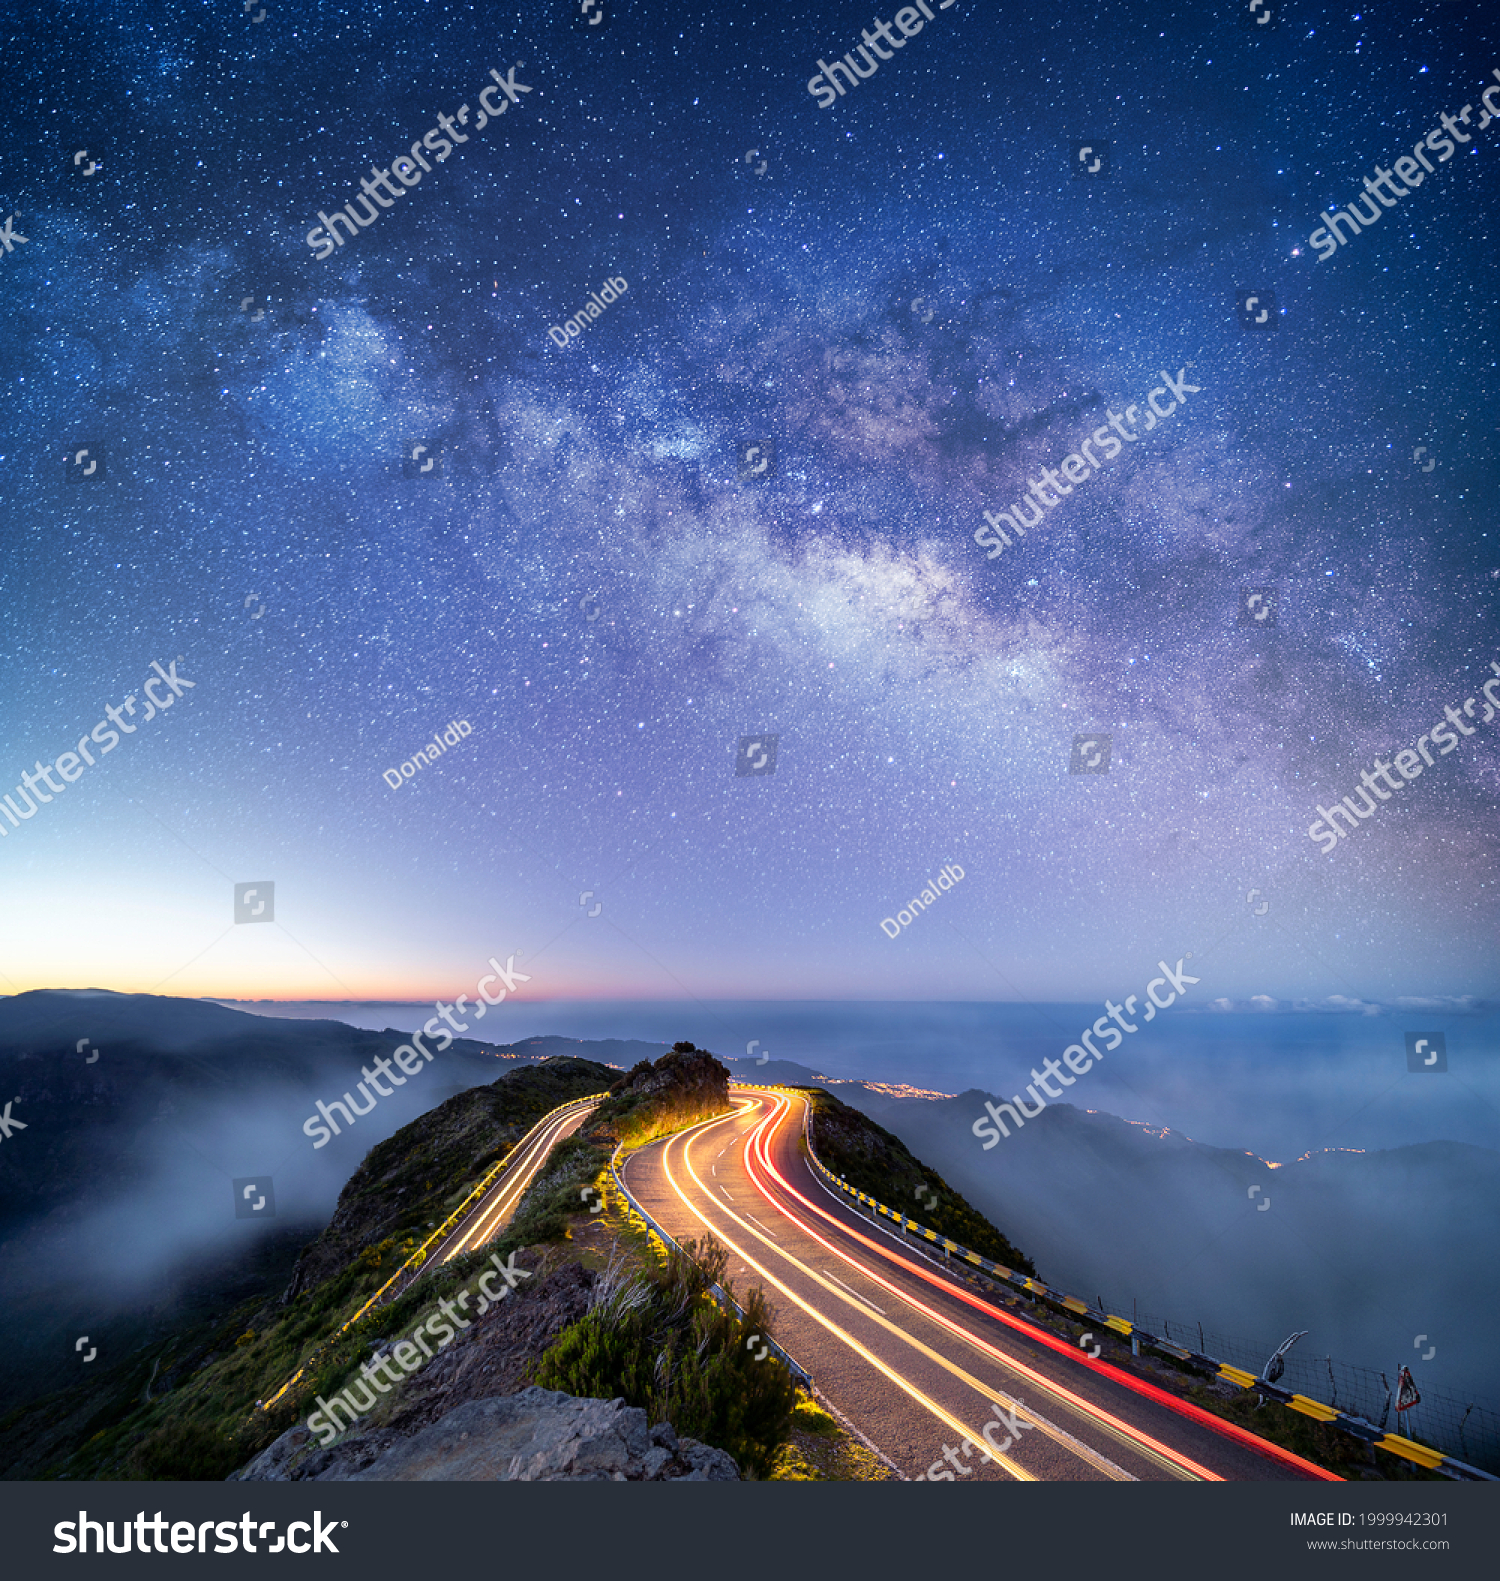 Astrophotography shot of hairpin turn with galactic core milky way rising on Madeira Island, Portugal #1999942301